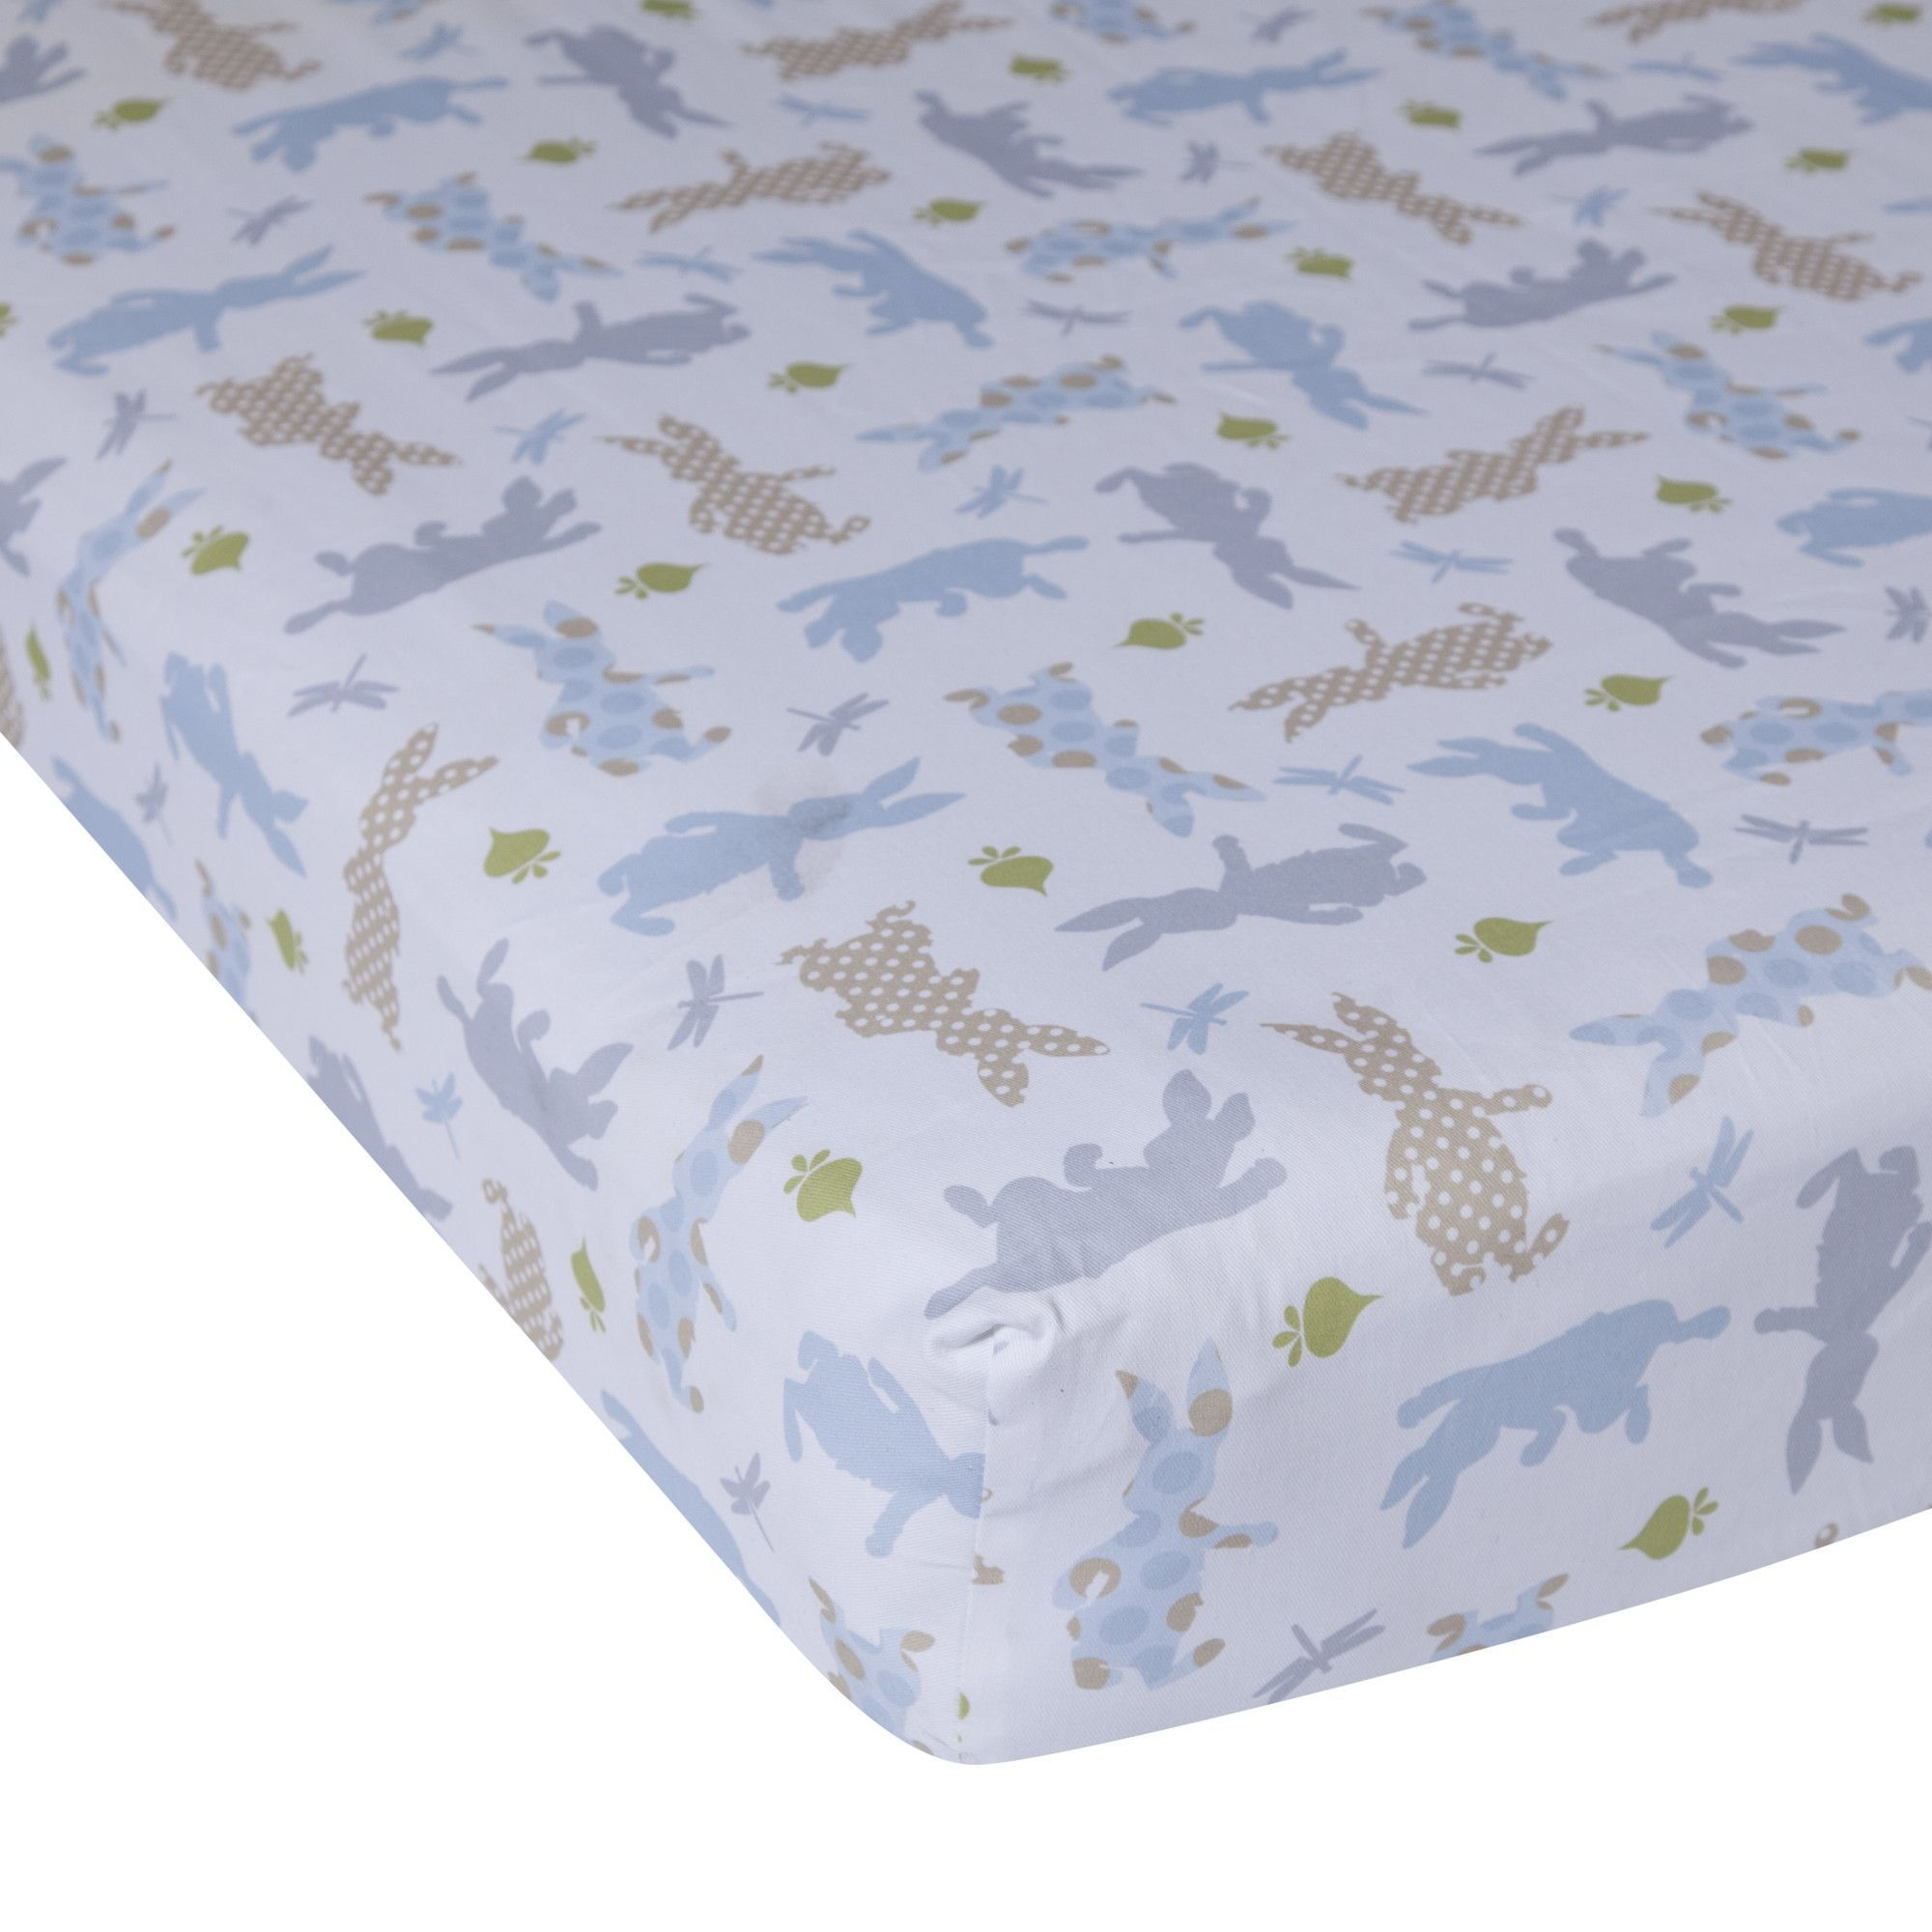 Peter Rabbit Crib Fitted Sheet